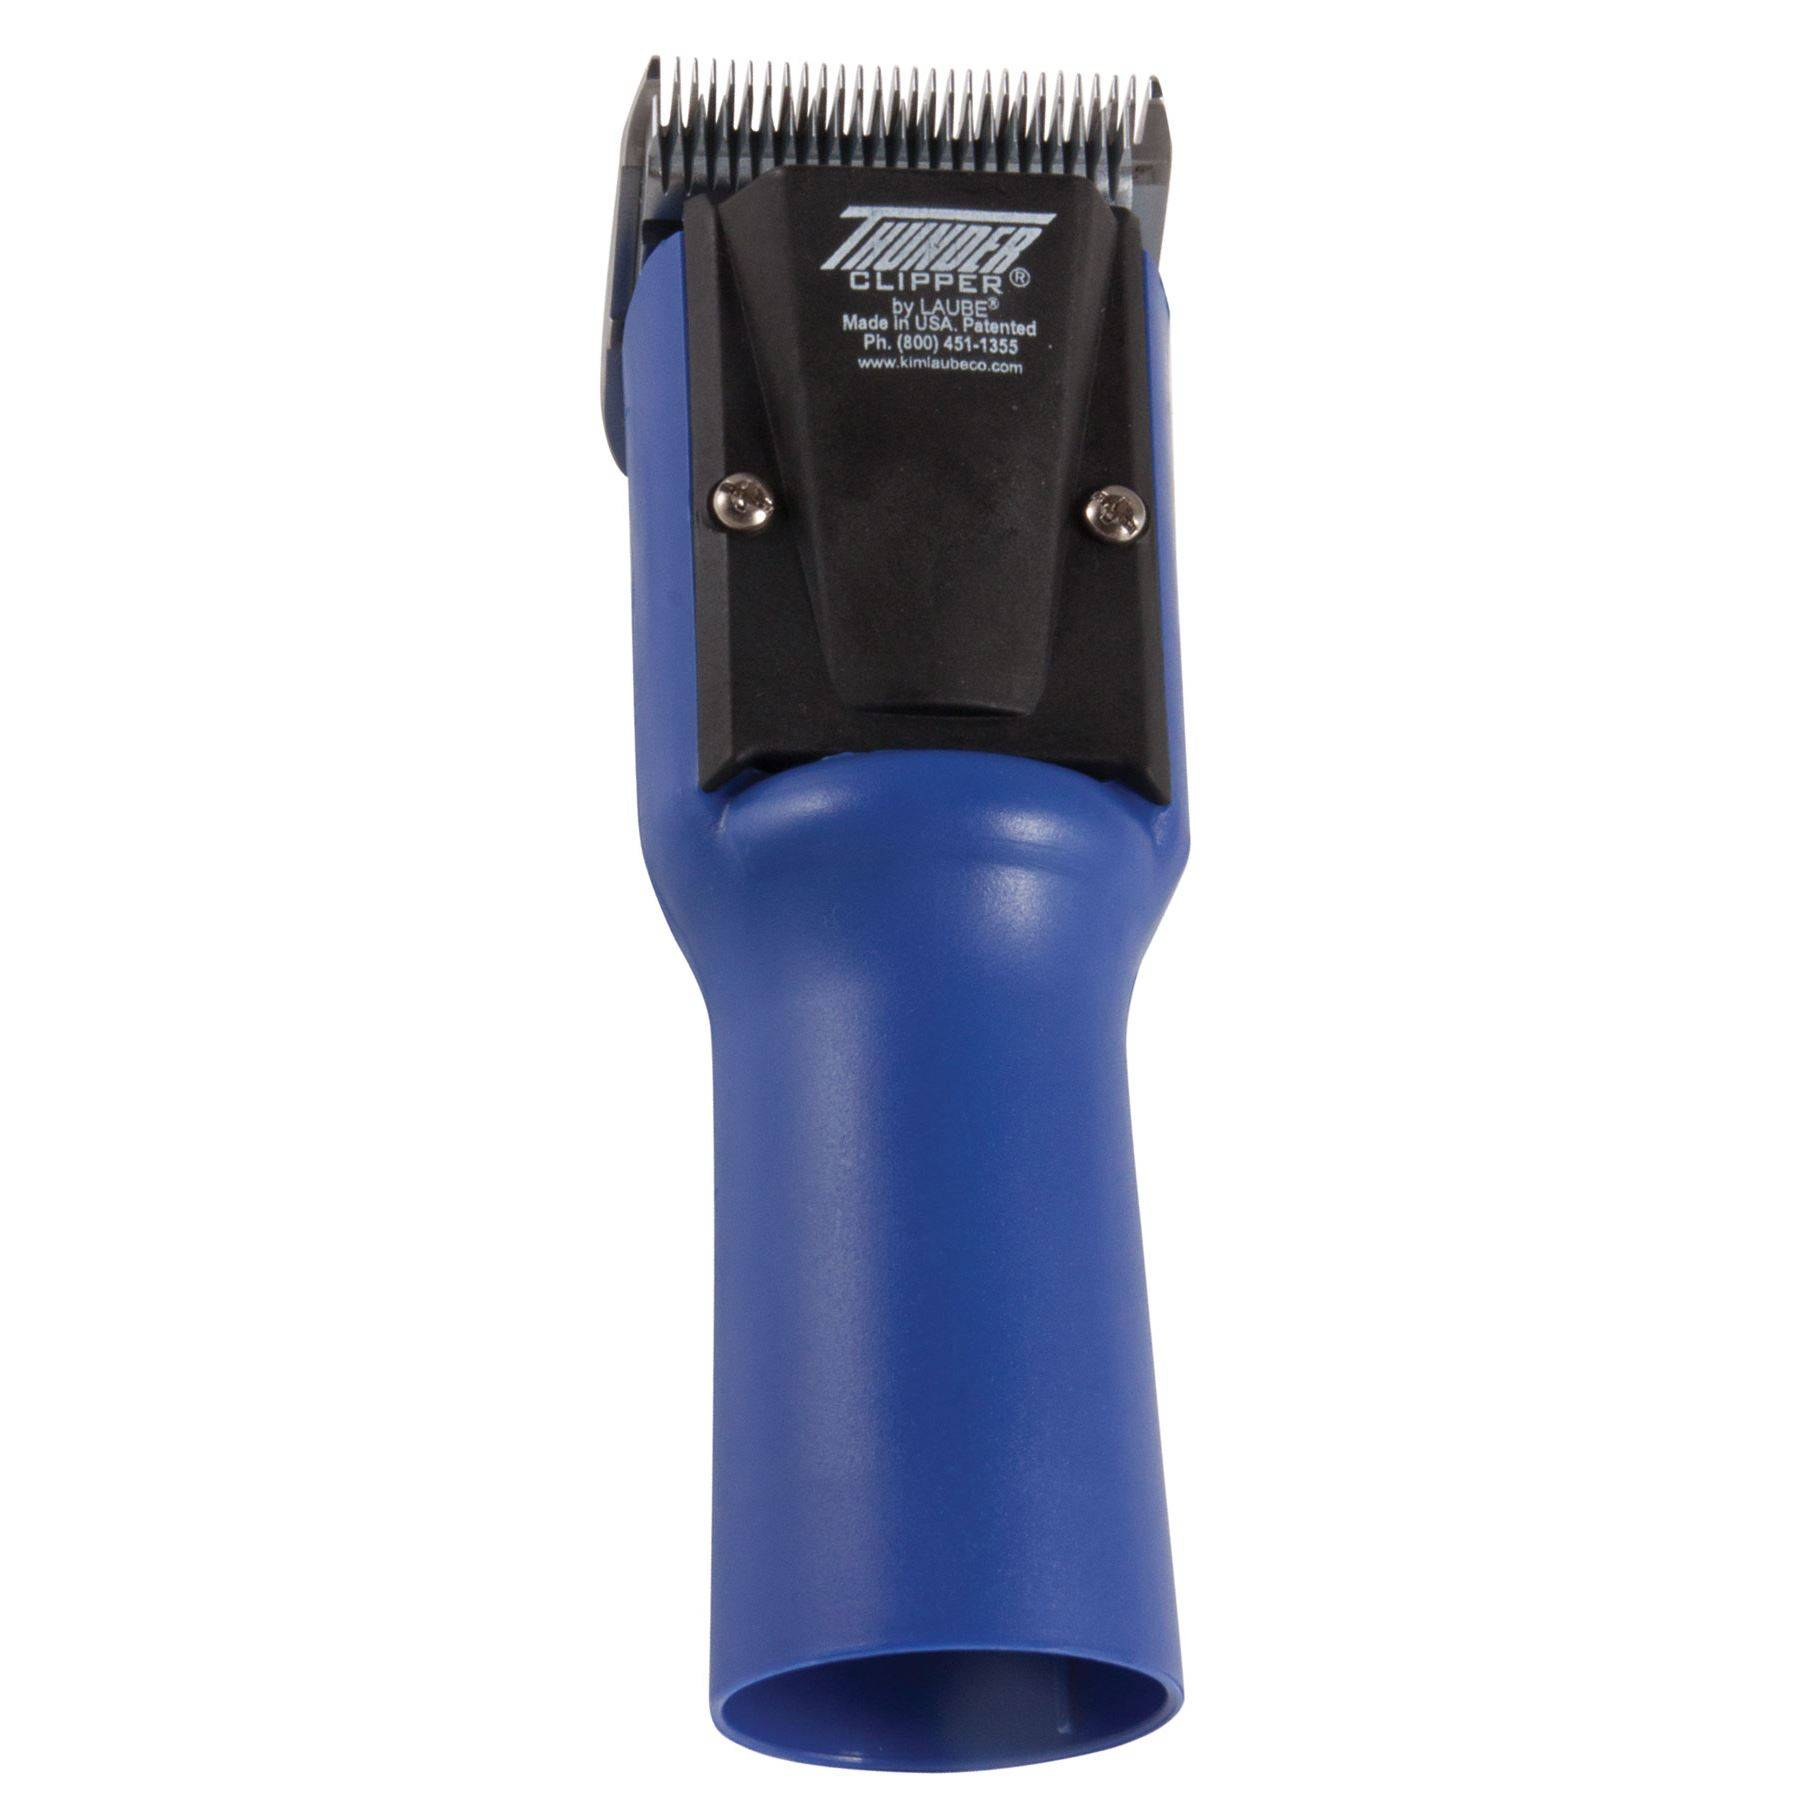 Laube Thunder Cordless Clipper Kit - 2 Speed